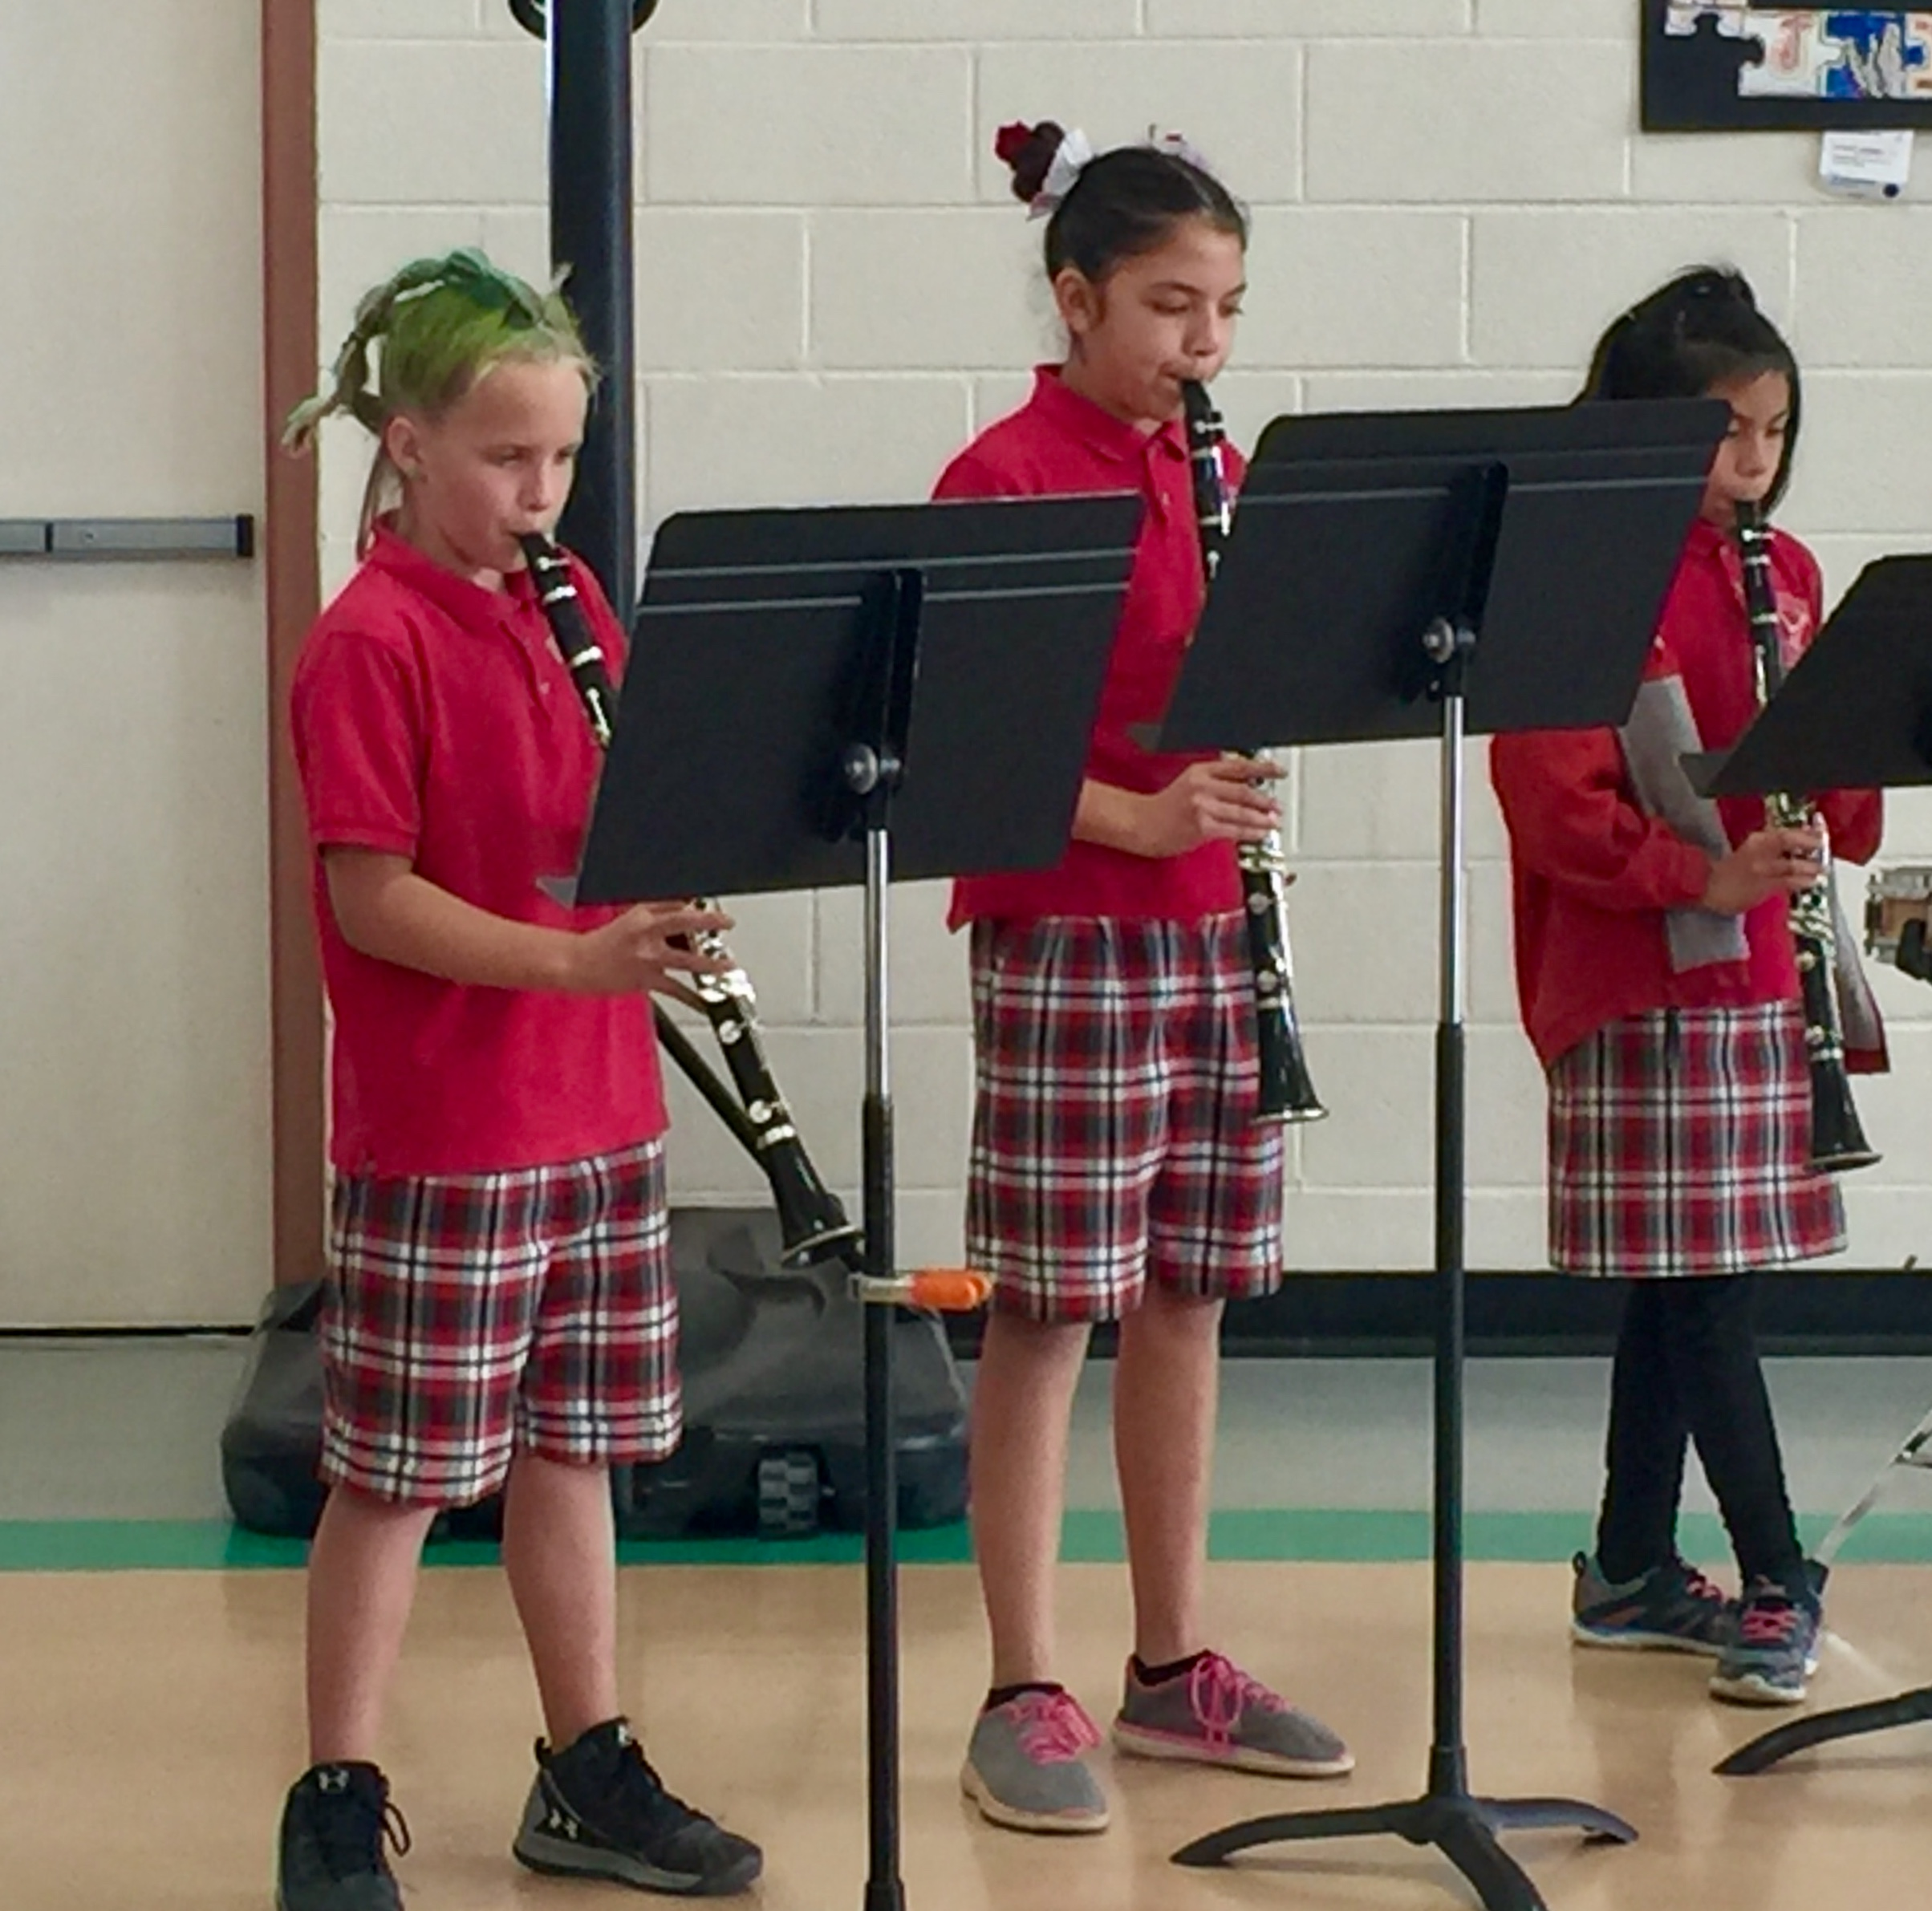 Tues-Talent-Clarinet-3Girls